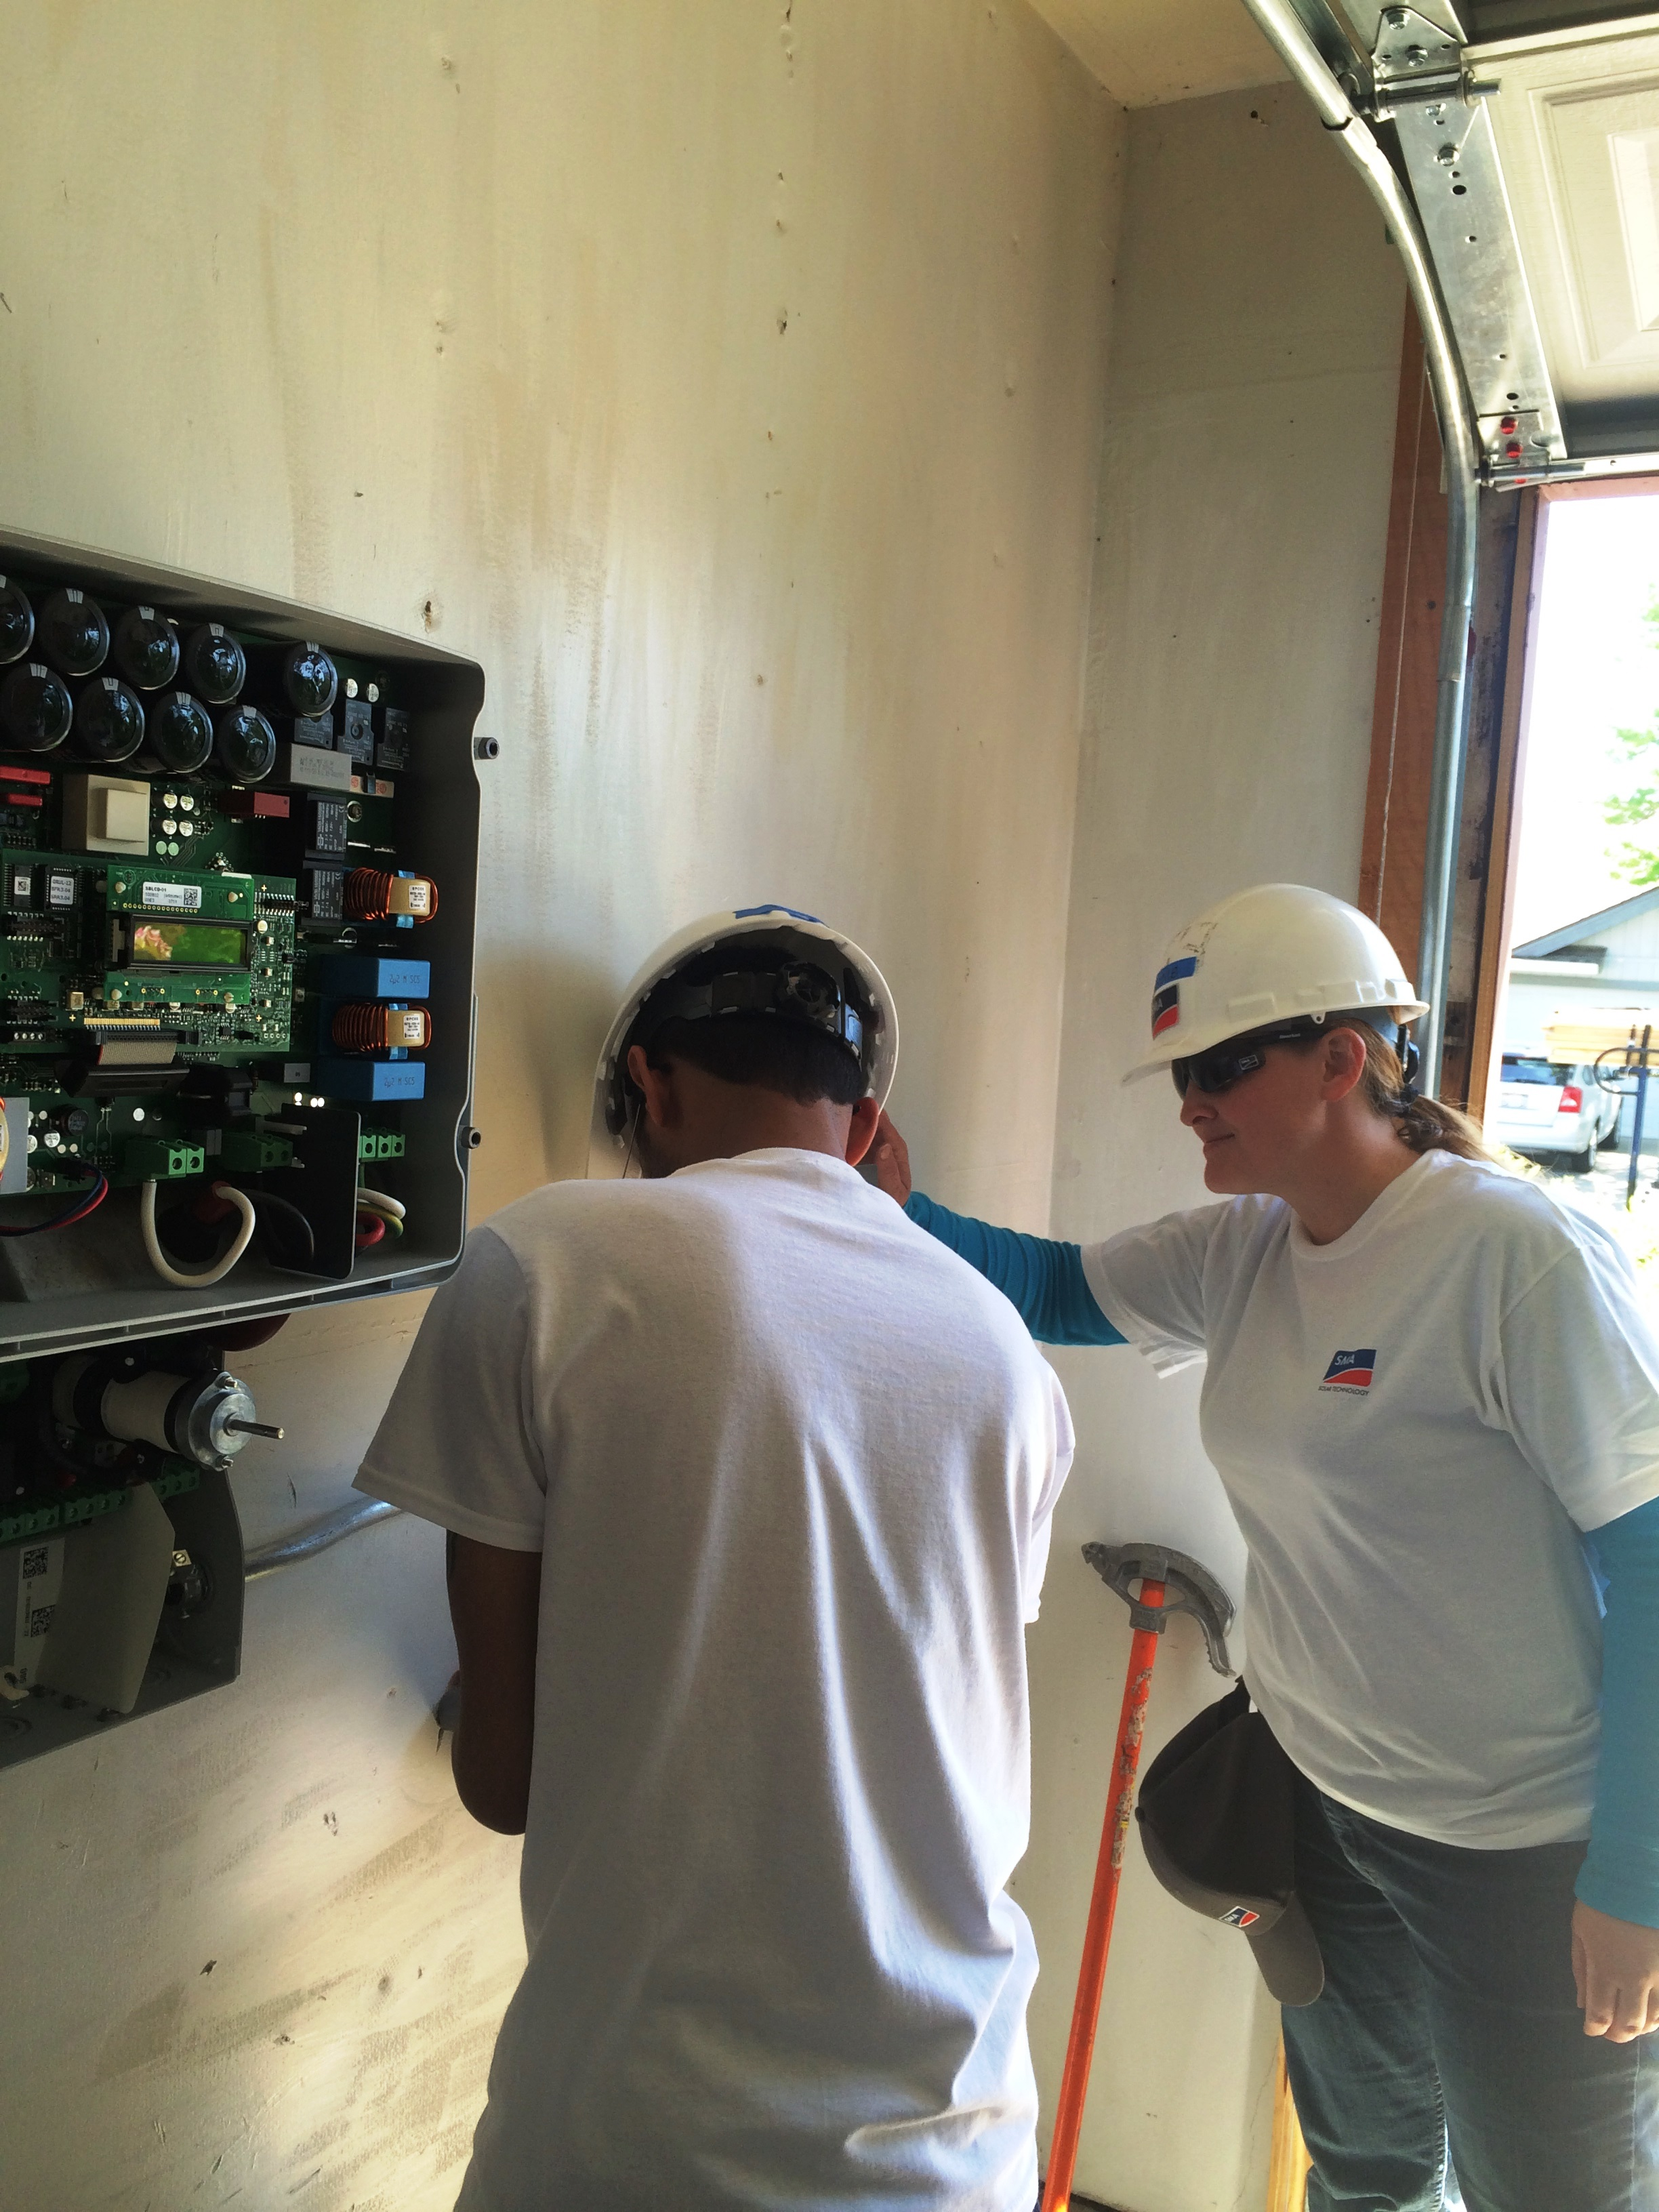 Myself on the right installing a Sunny Boy 3000-US with a colleague for GRID Alternatives.